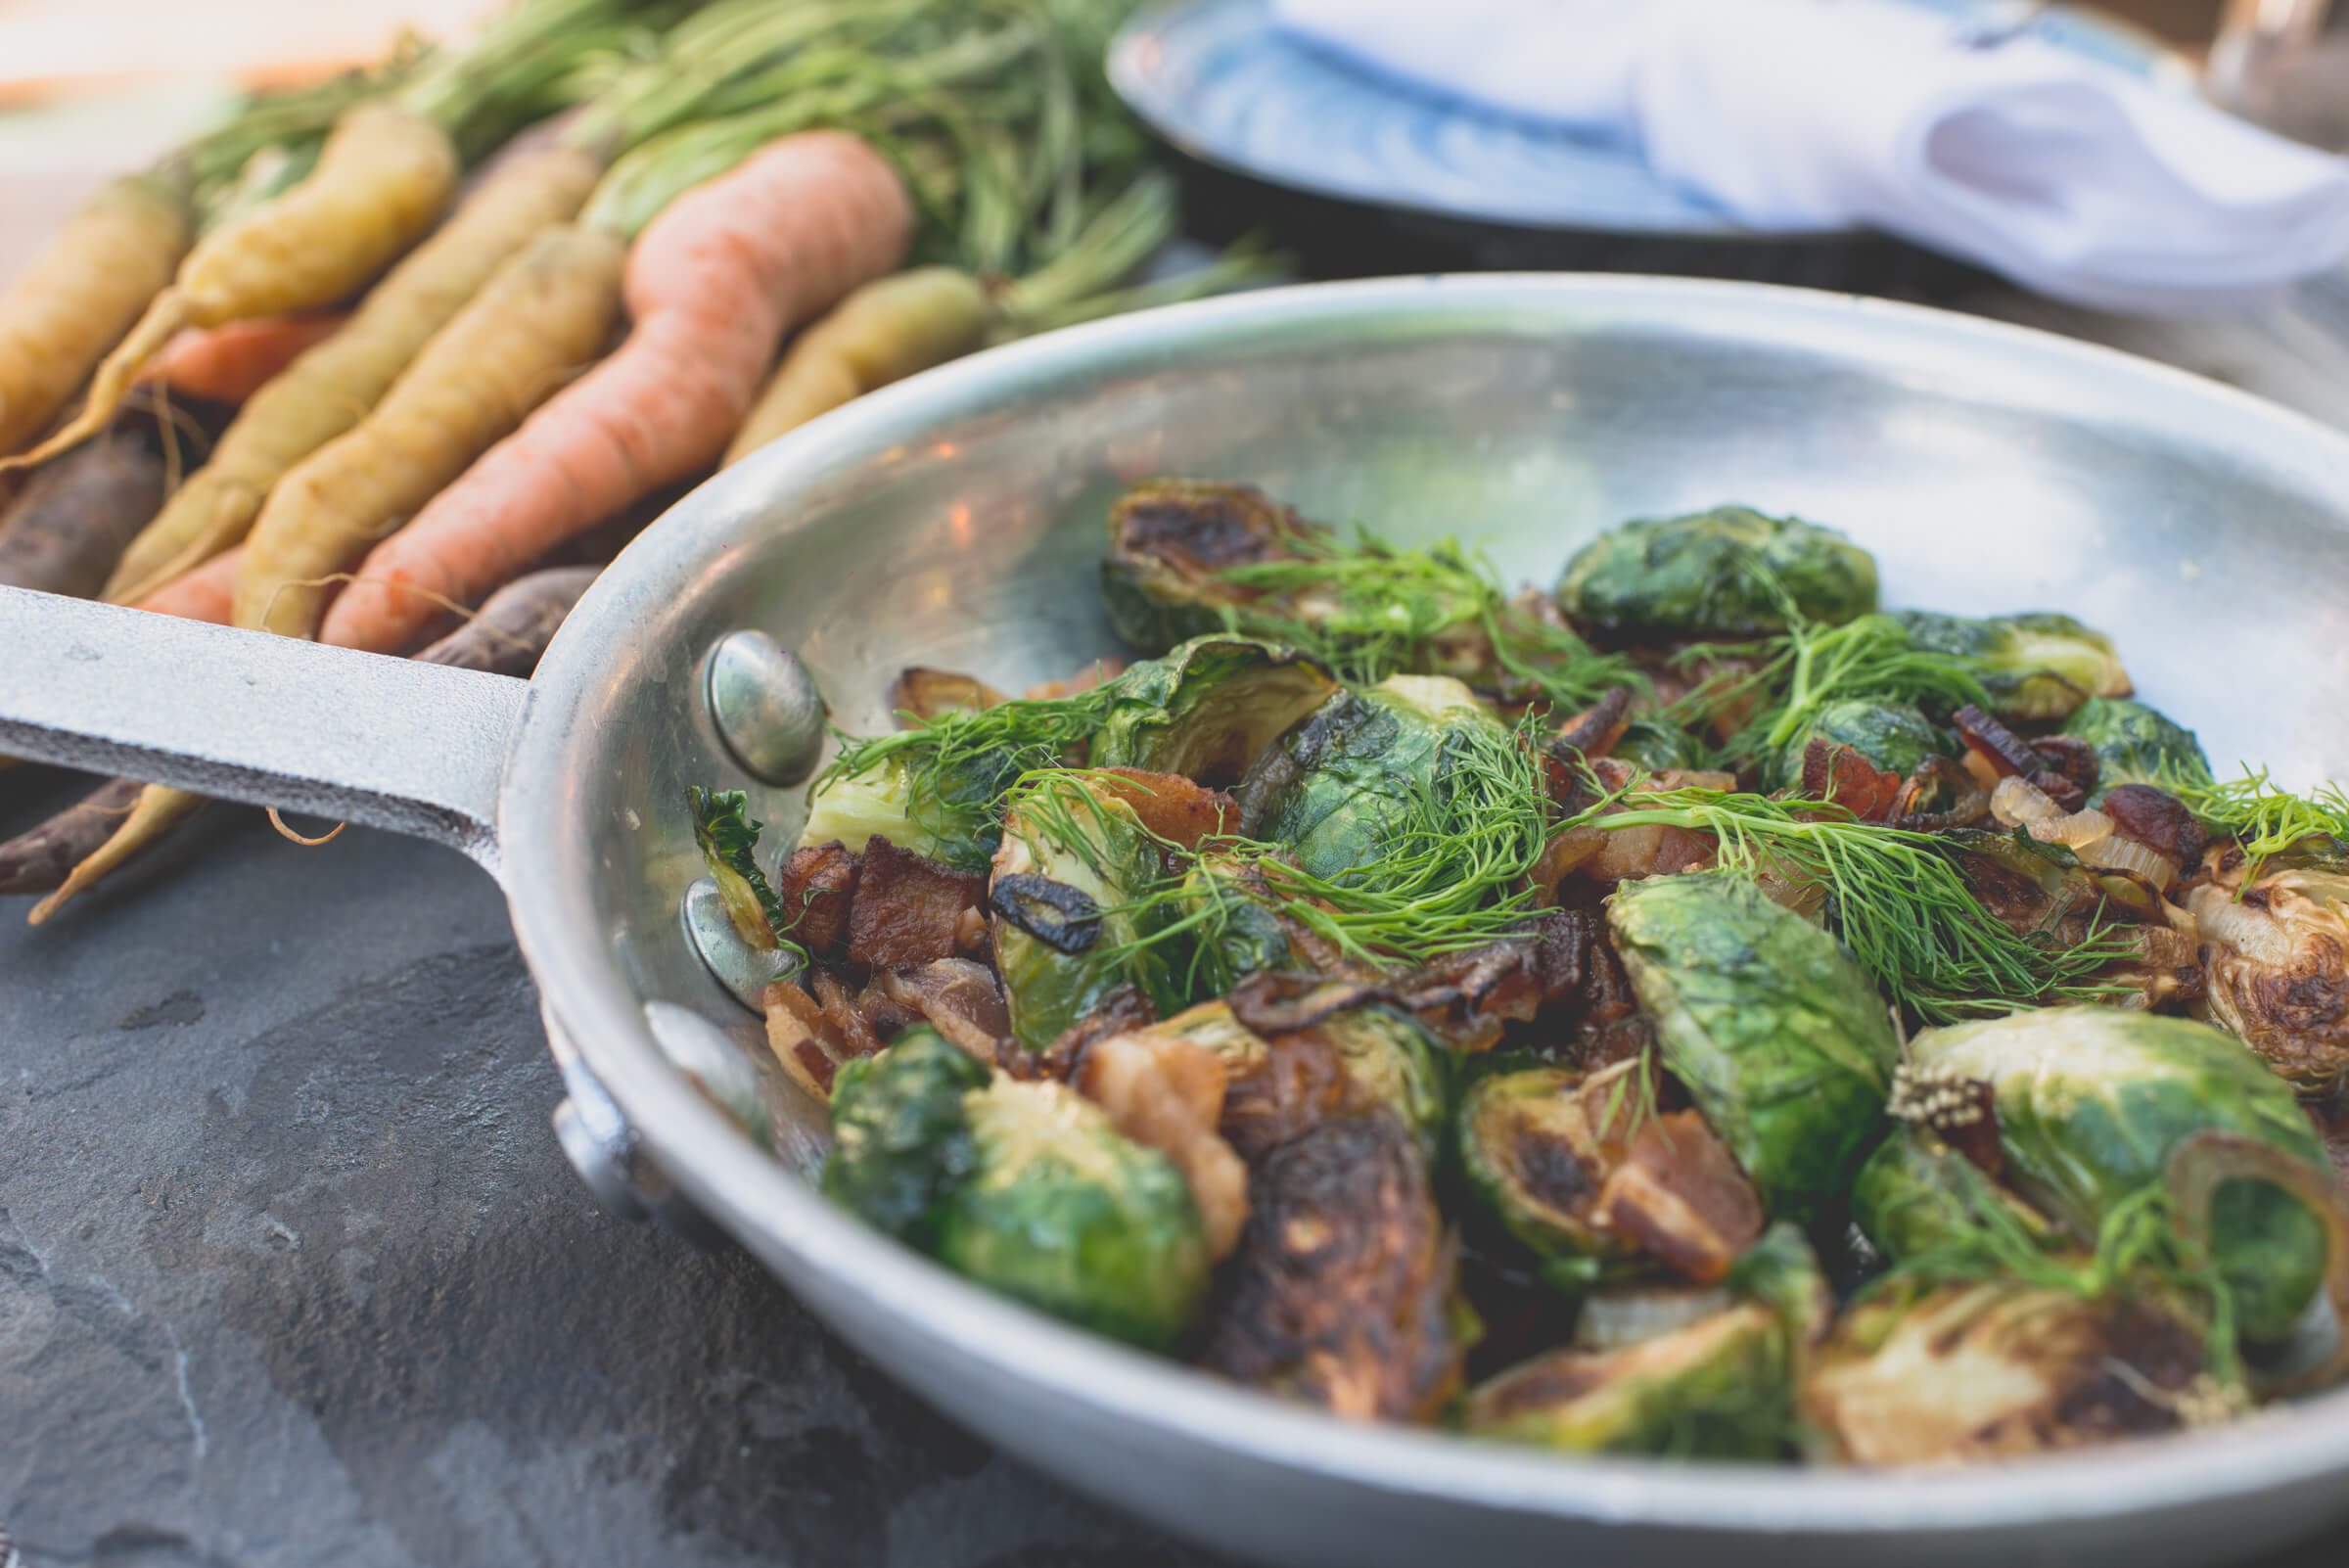 brussel sprouts, thyme, and carrots